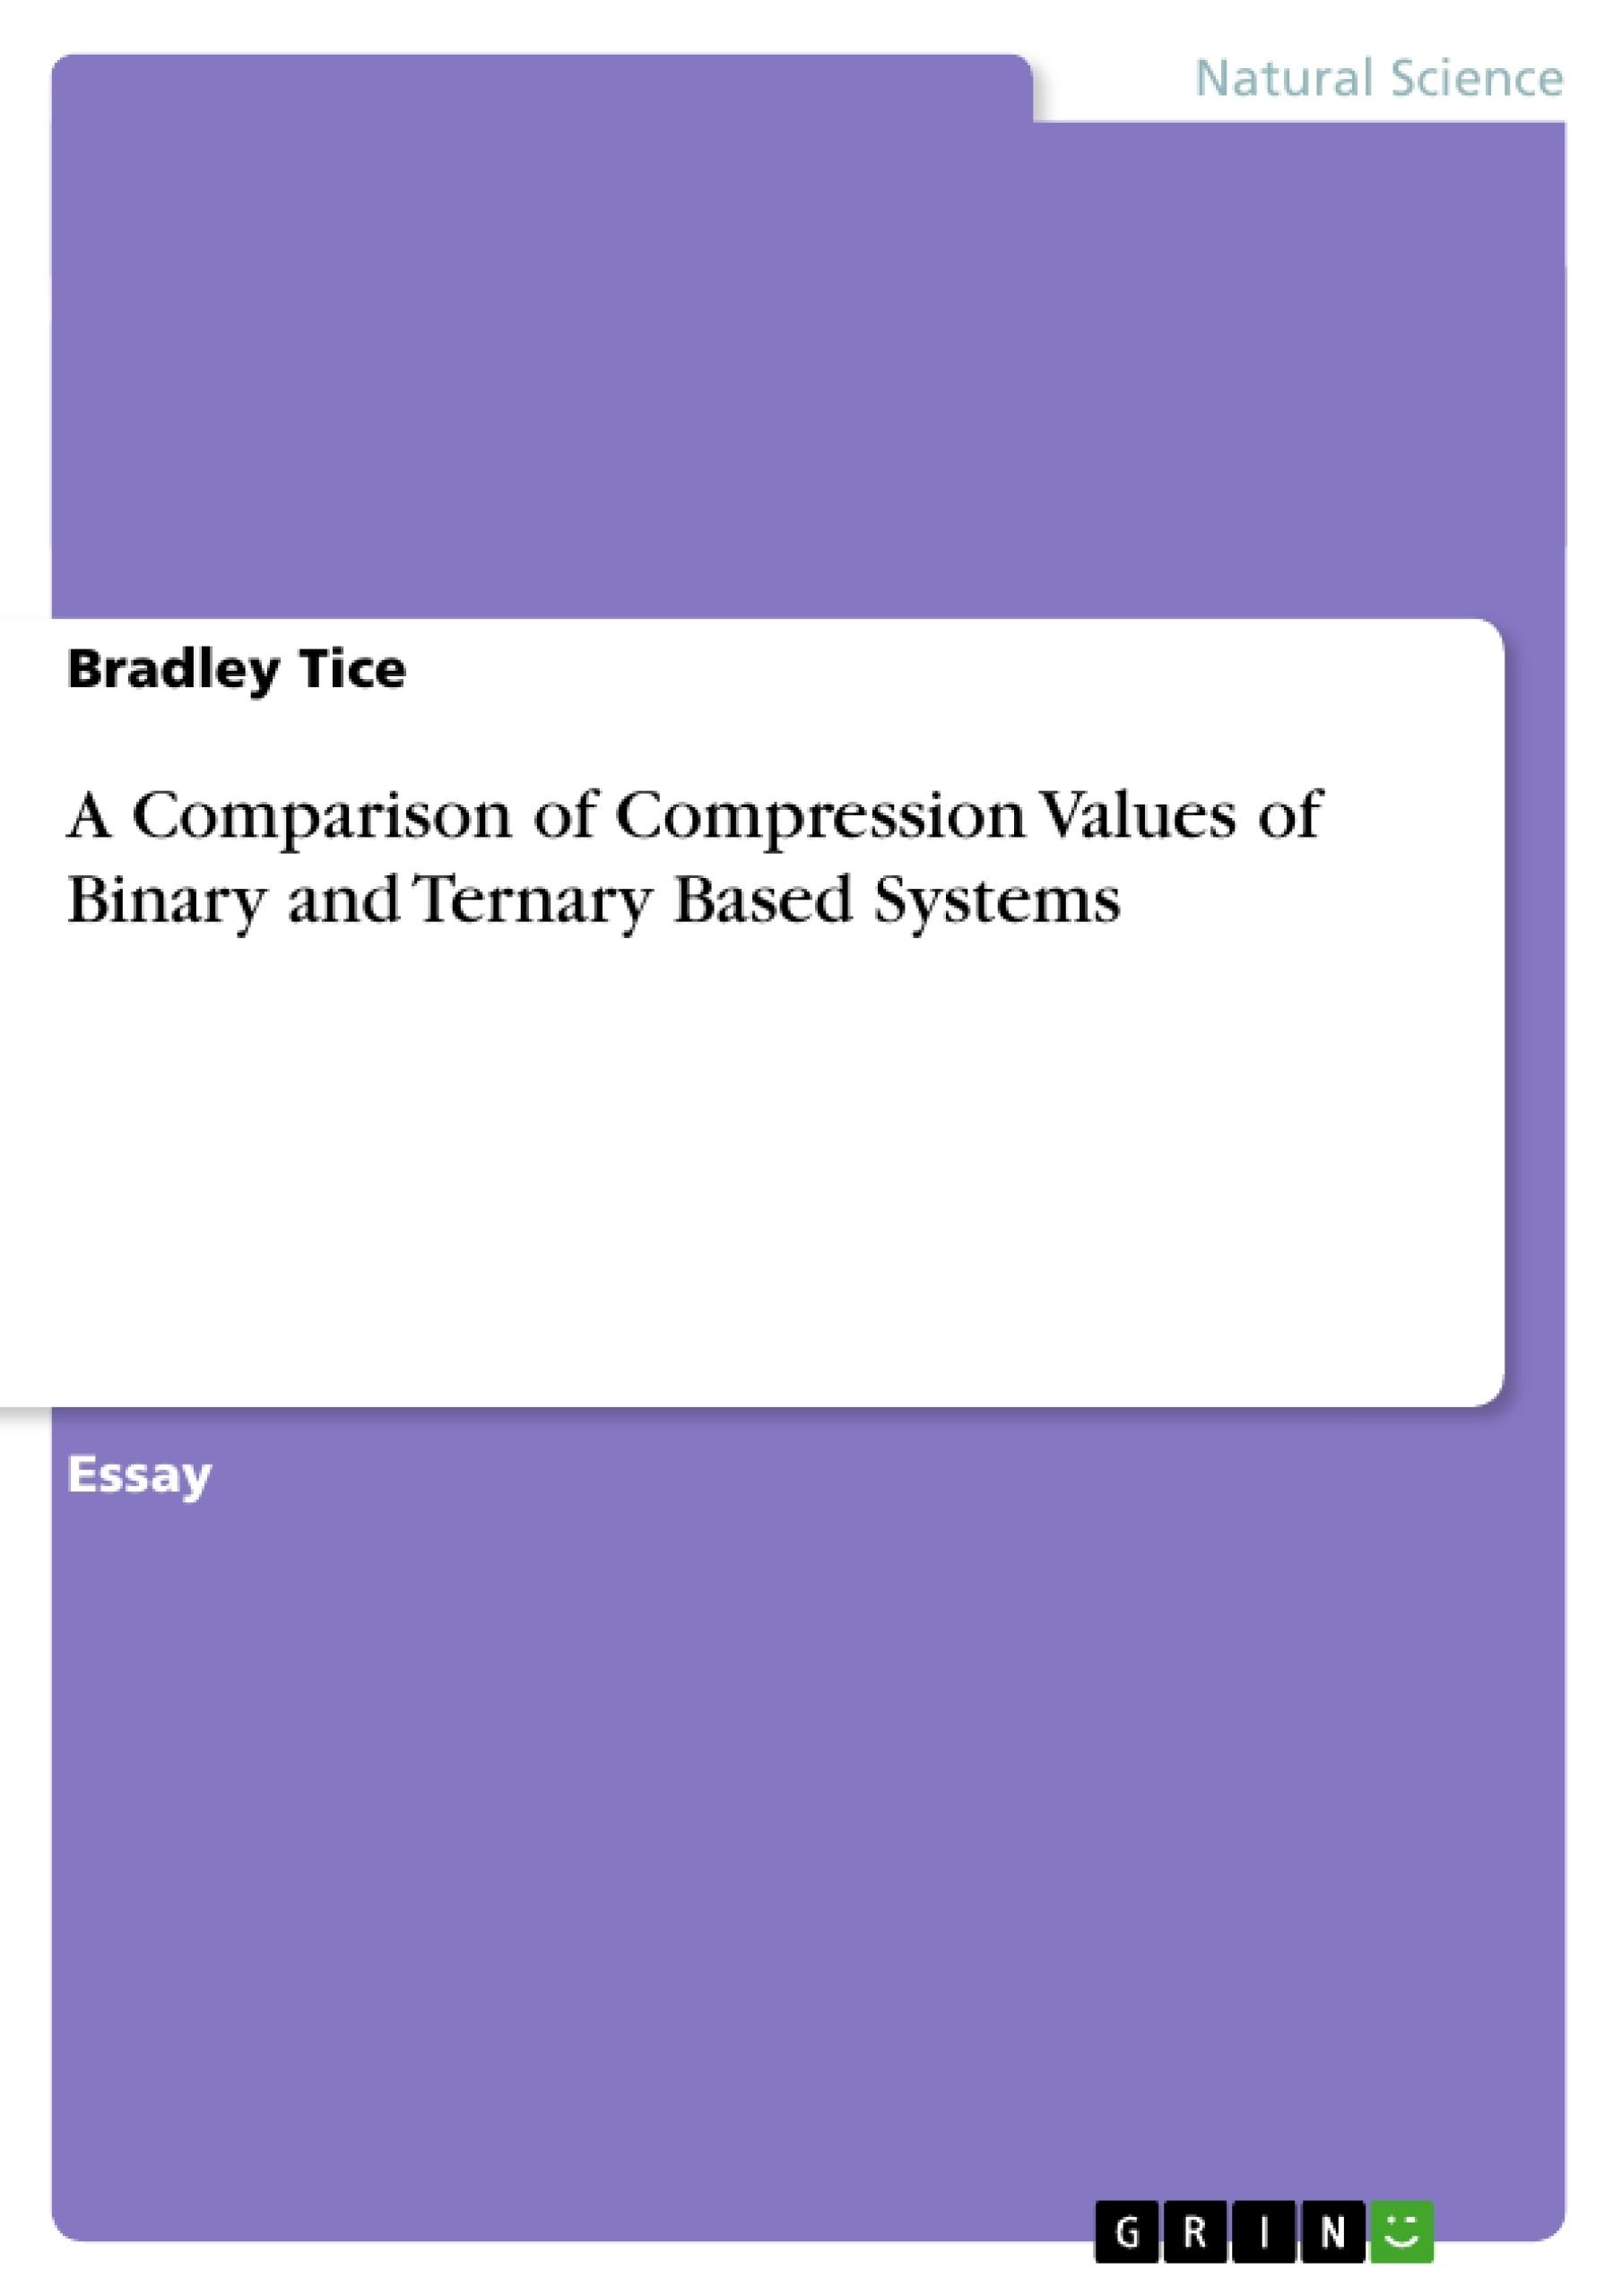 Title: A Comparison of Compression Values of Binary and Ternary Based Systems